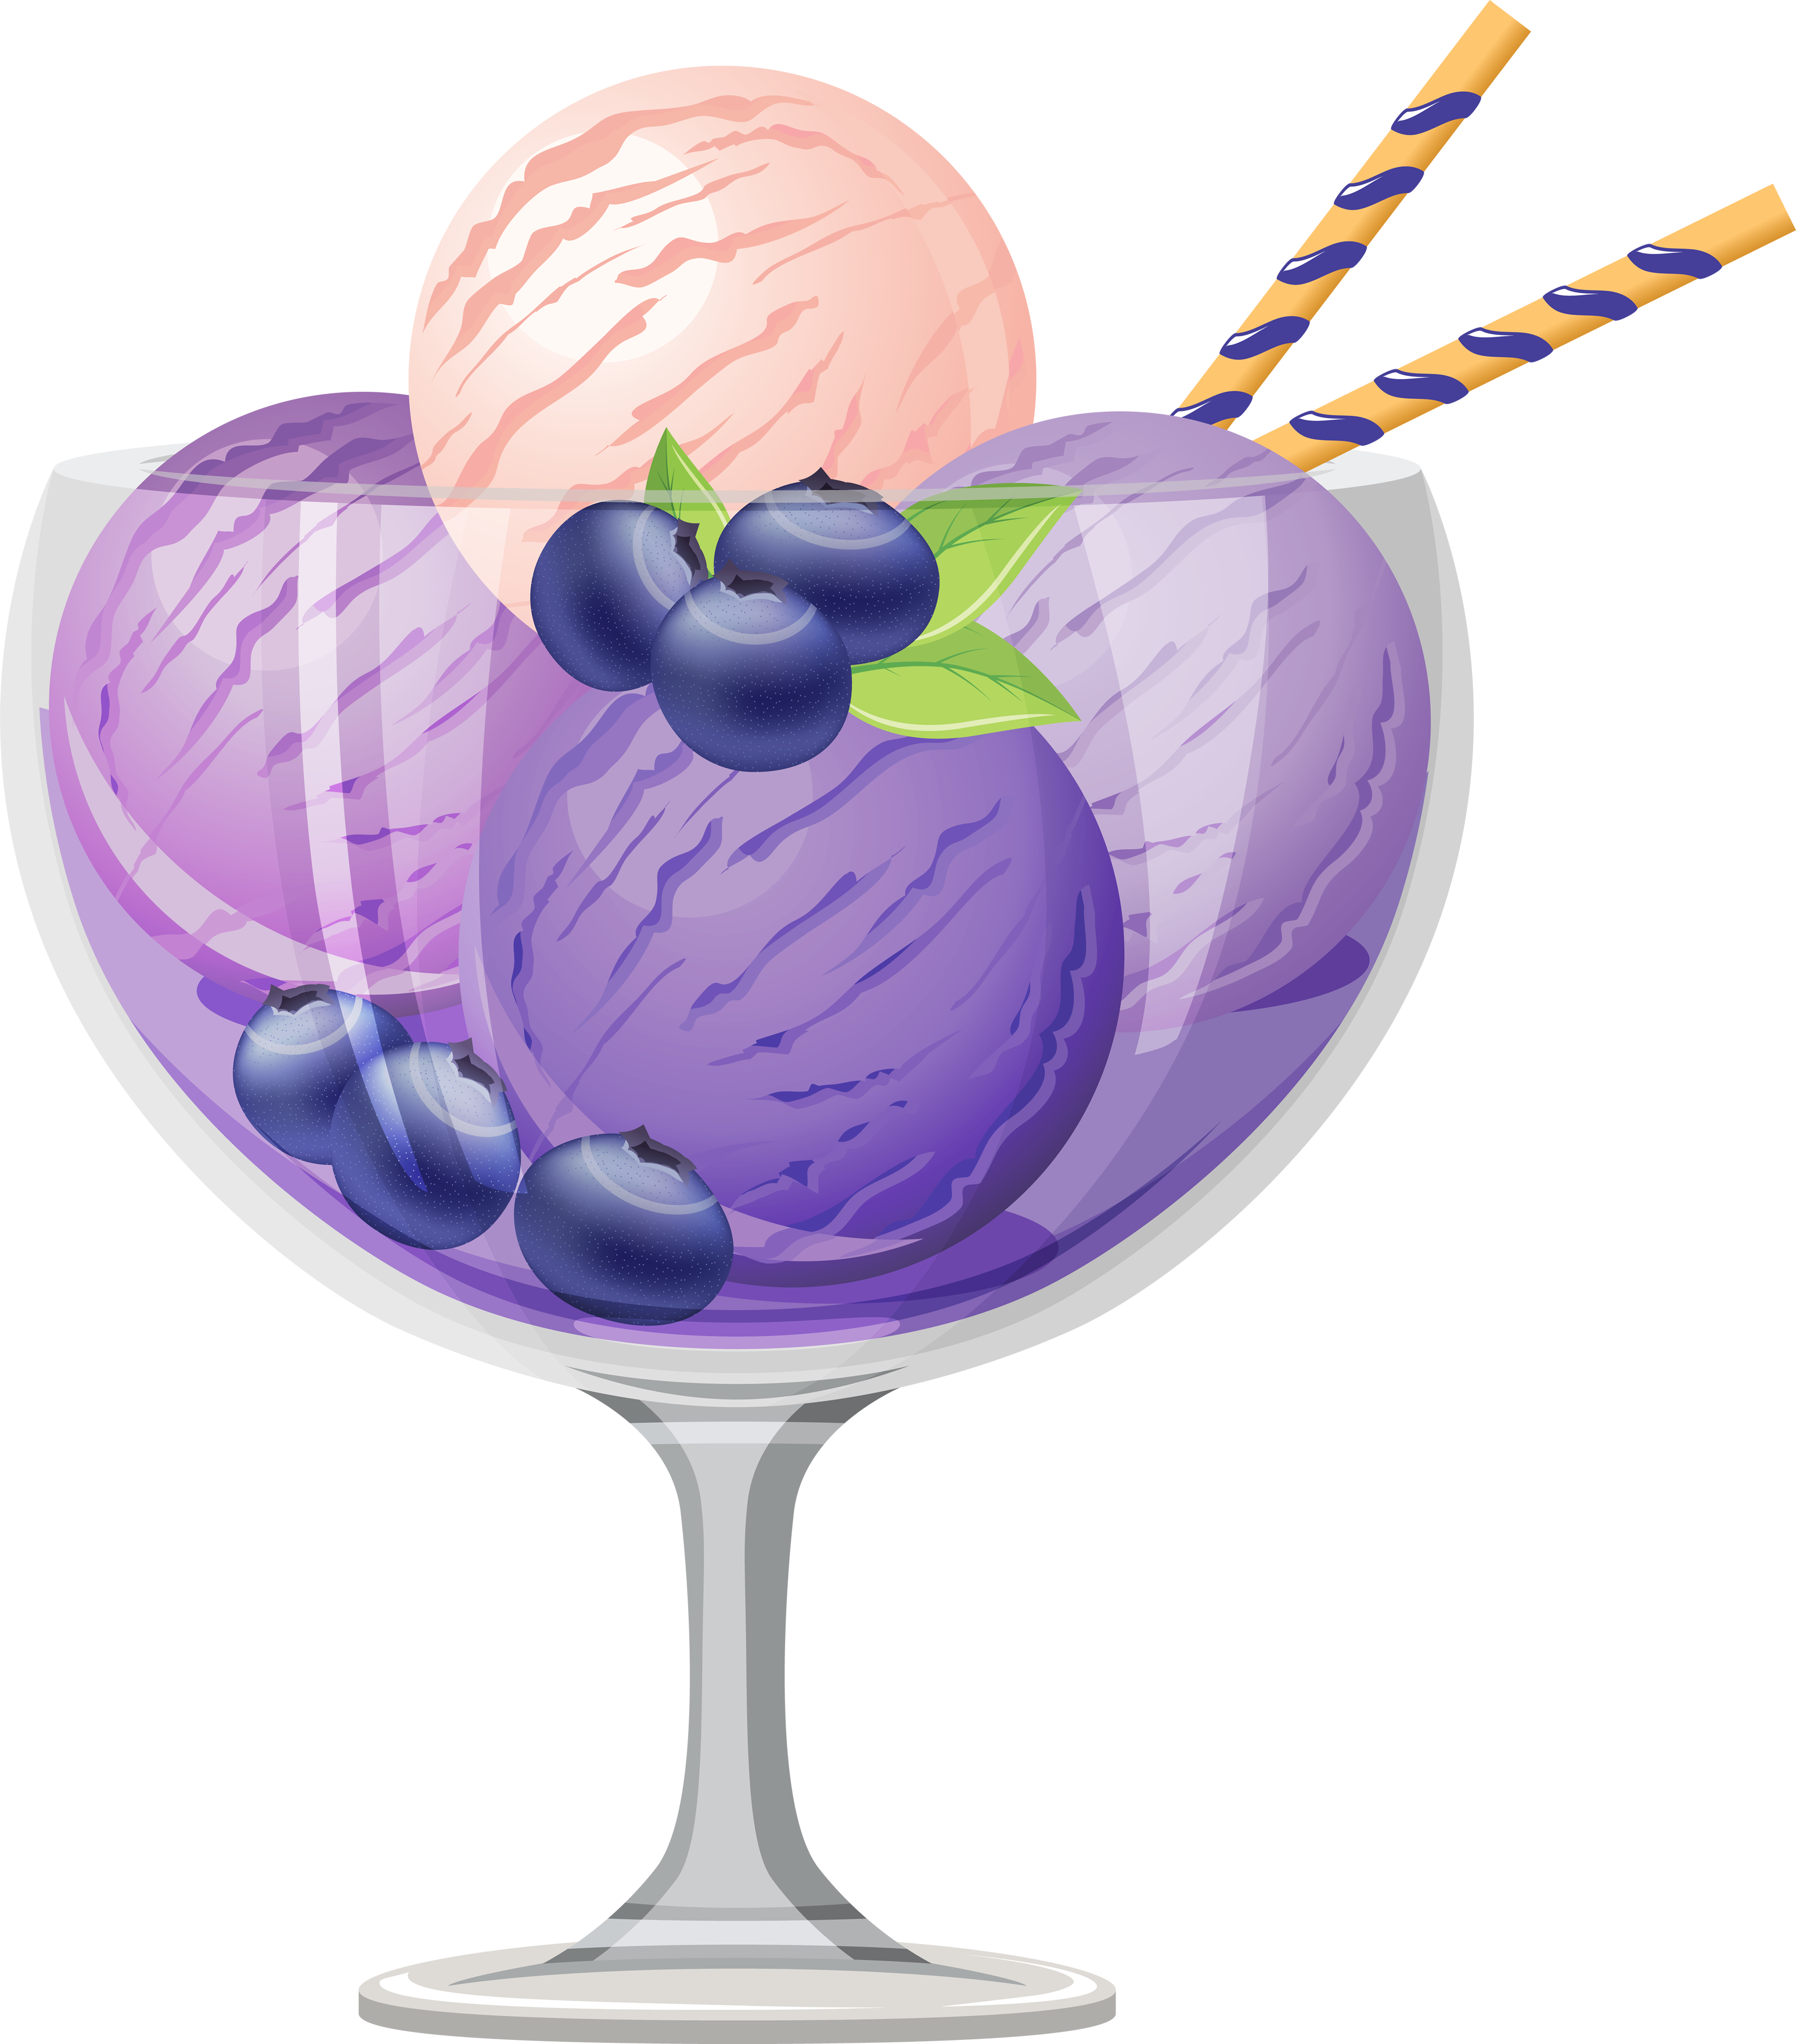 Ice cream PNG image image with transparent background